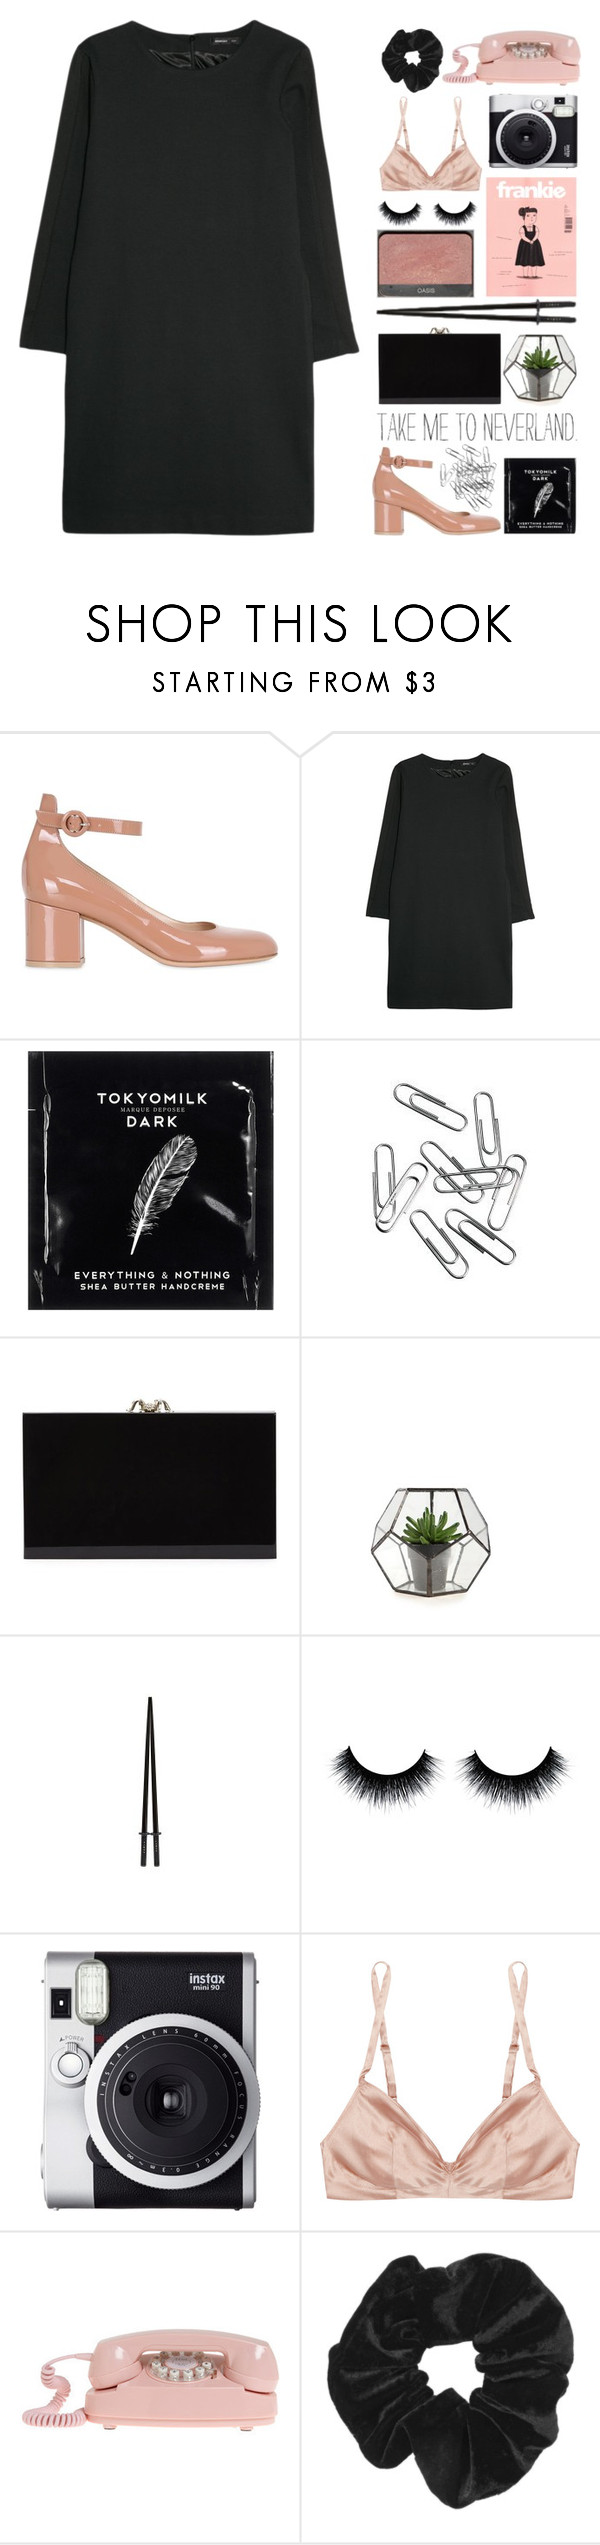 """""""Where flying in the sky"""" by yungfreshprincess ❤ liked on Polyvore featuring Gianvito Rossi, MANGO, TokyoMilk, Charlotte Olympia, Fuji, Rituel by Carine Gilson and Topshop"""